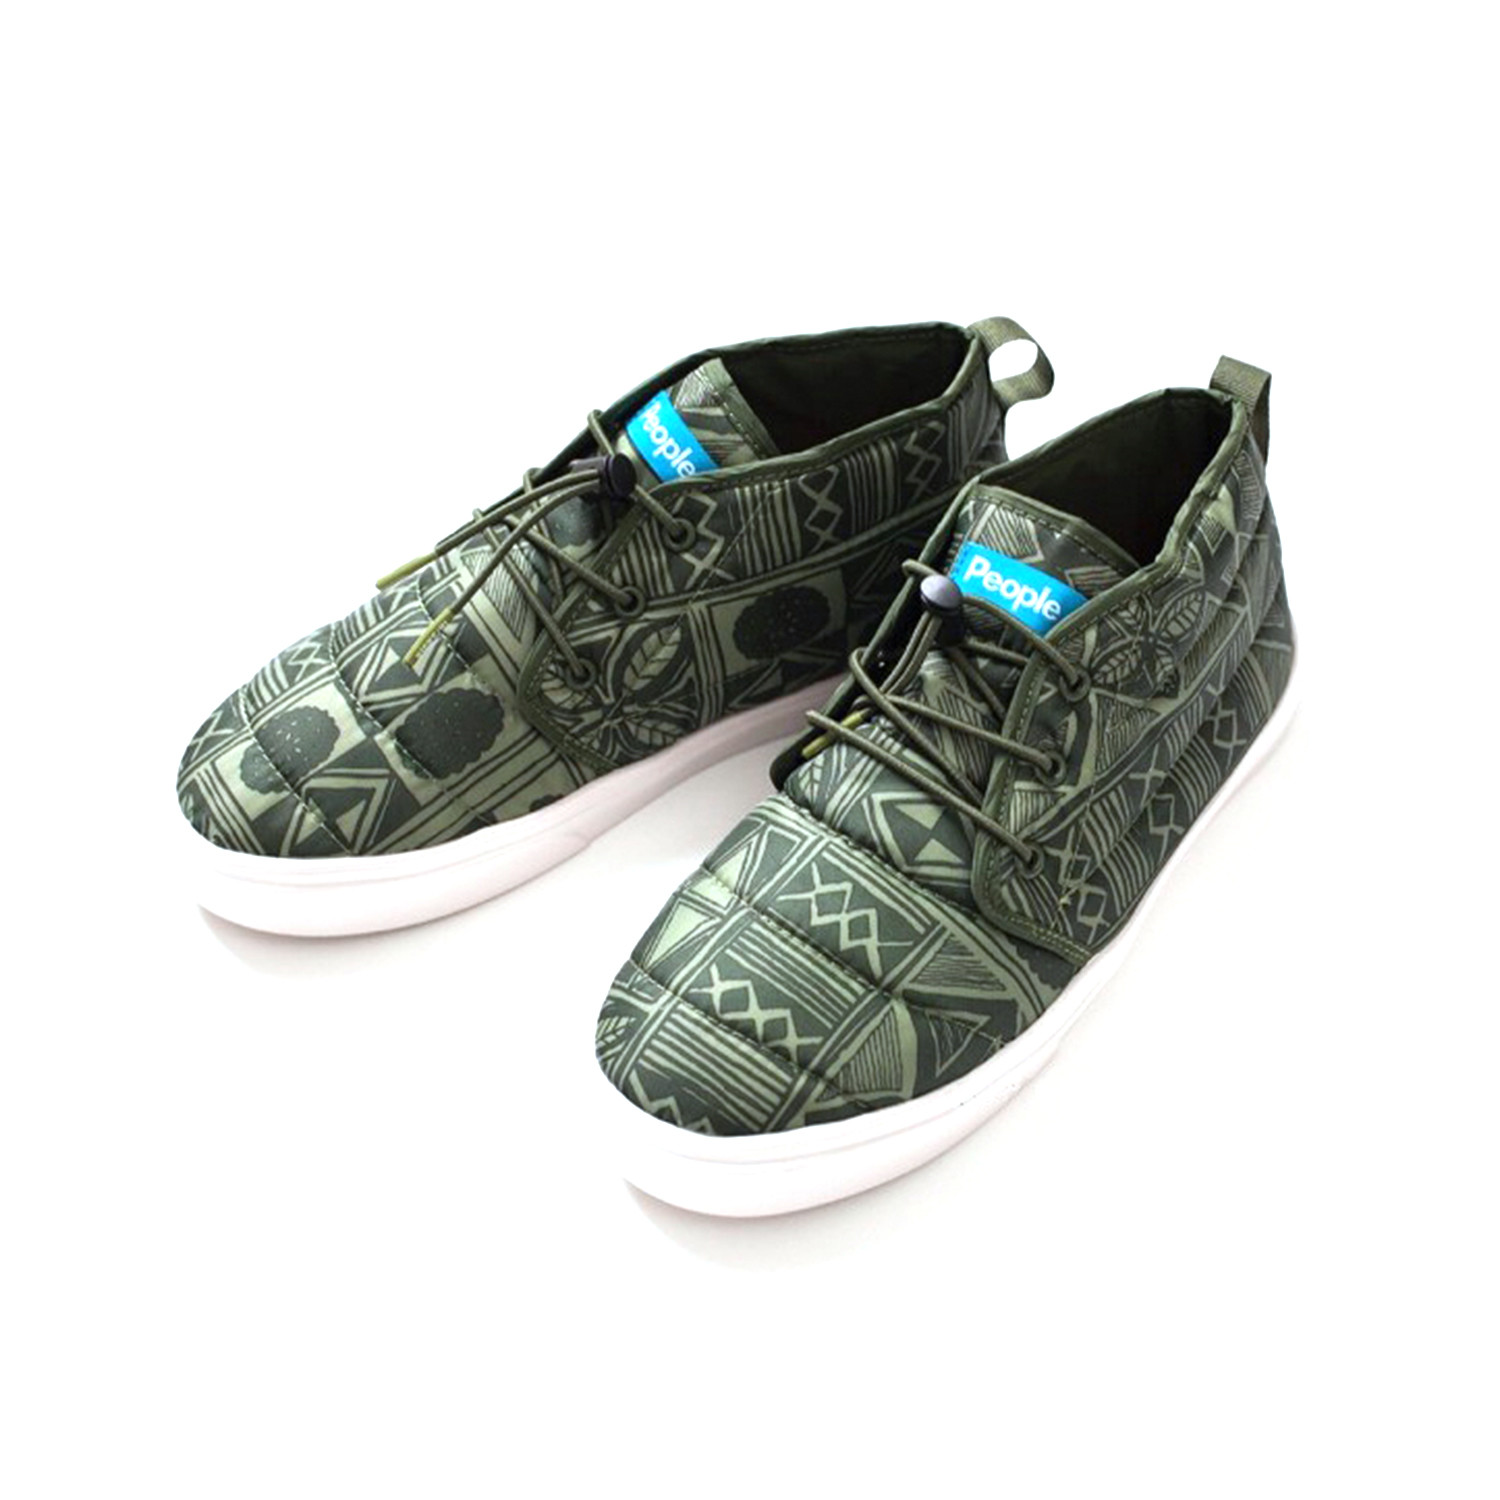 Cypress Sneaker    Kicks Hawaii (US  7) - People - Touch of Modern 3672269fd